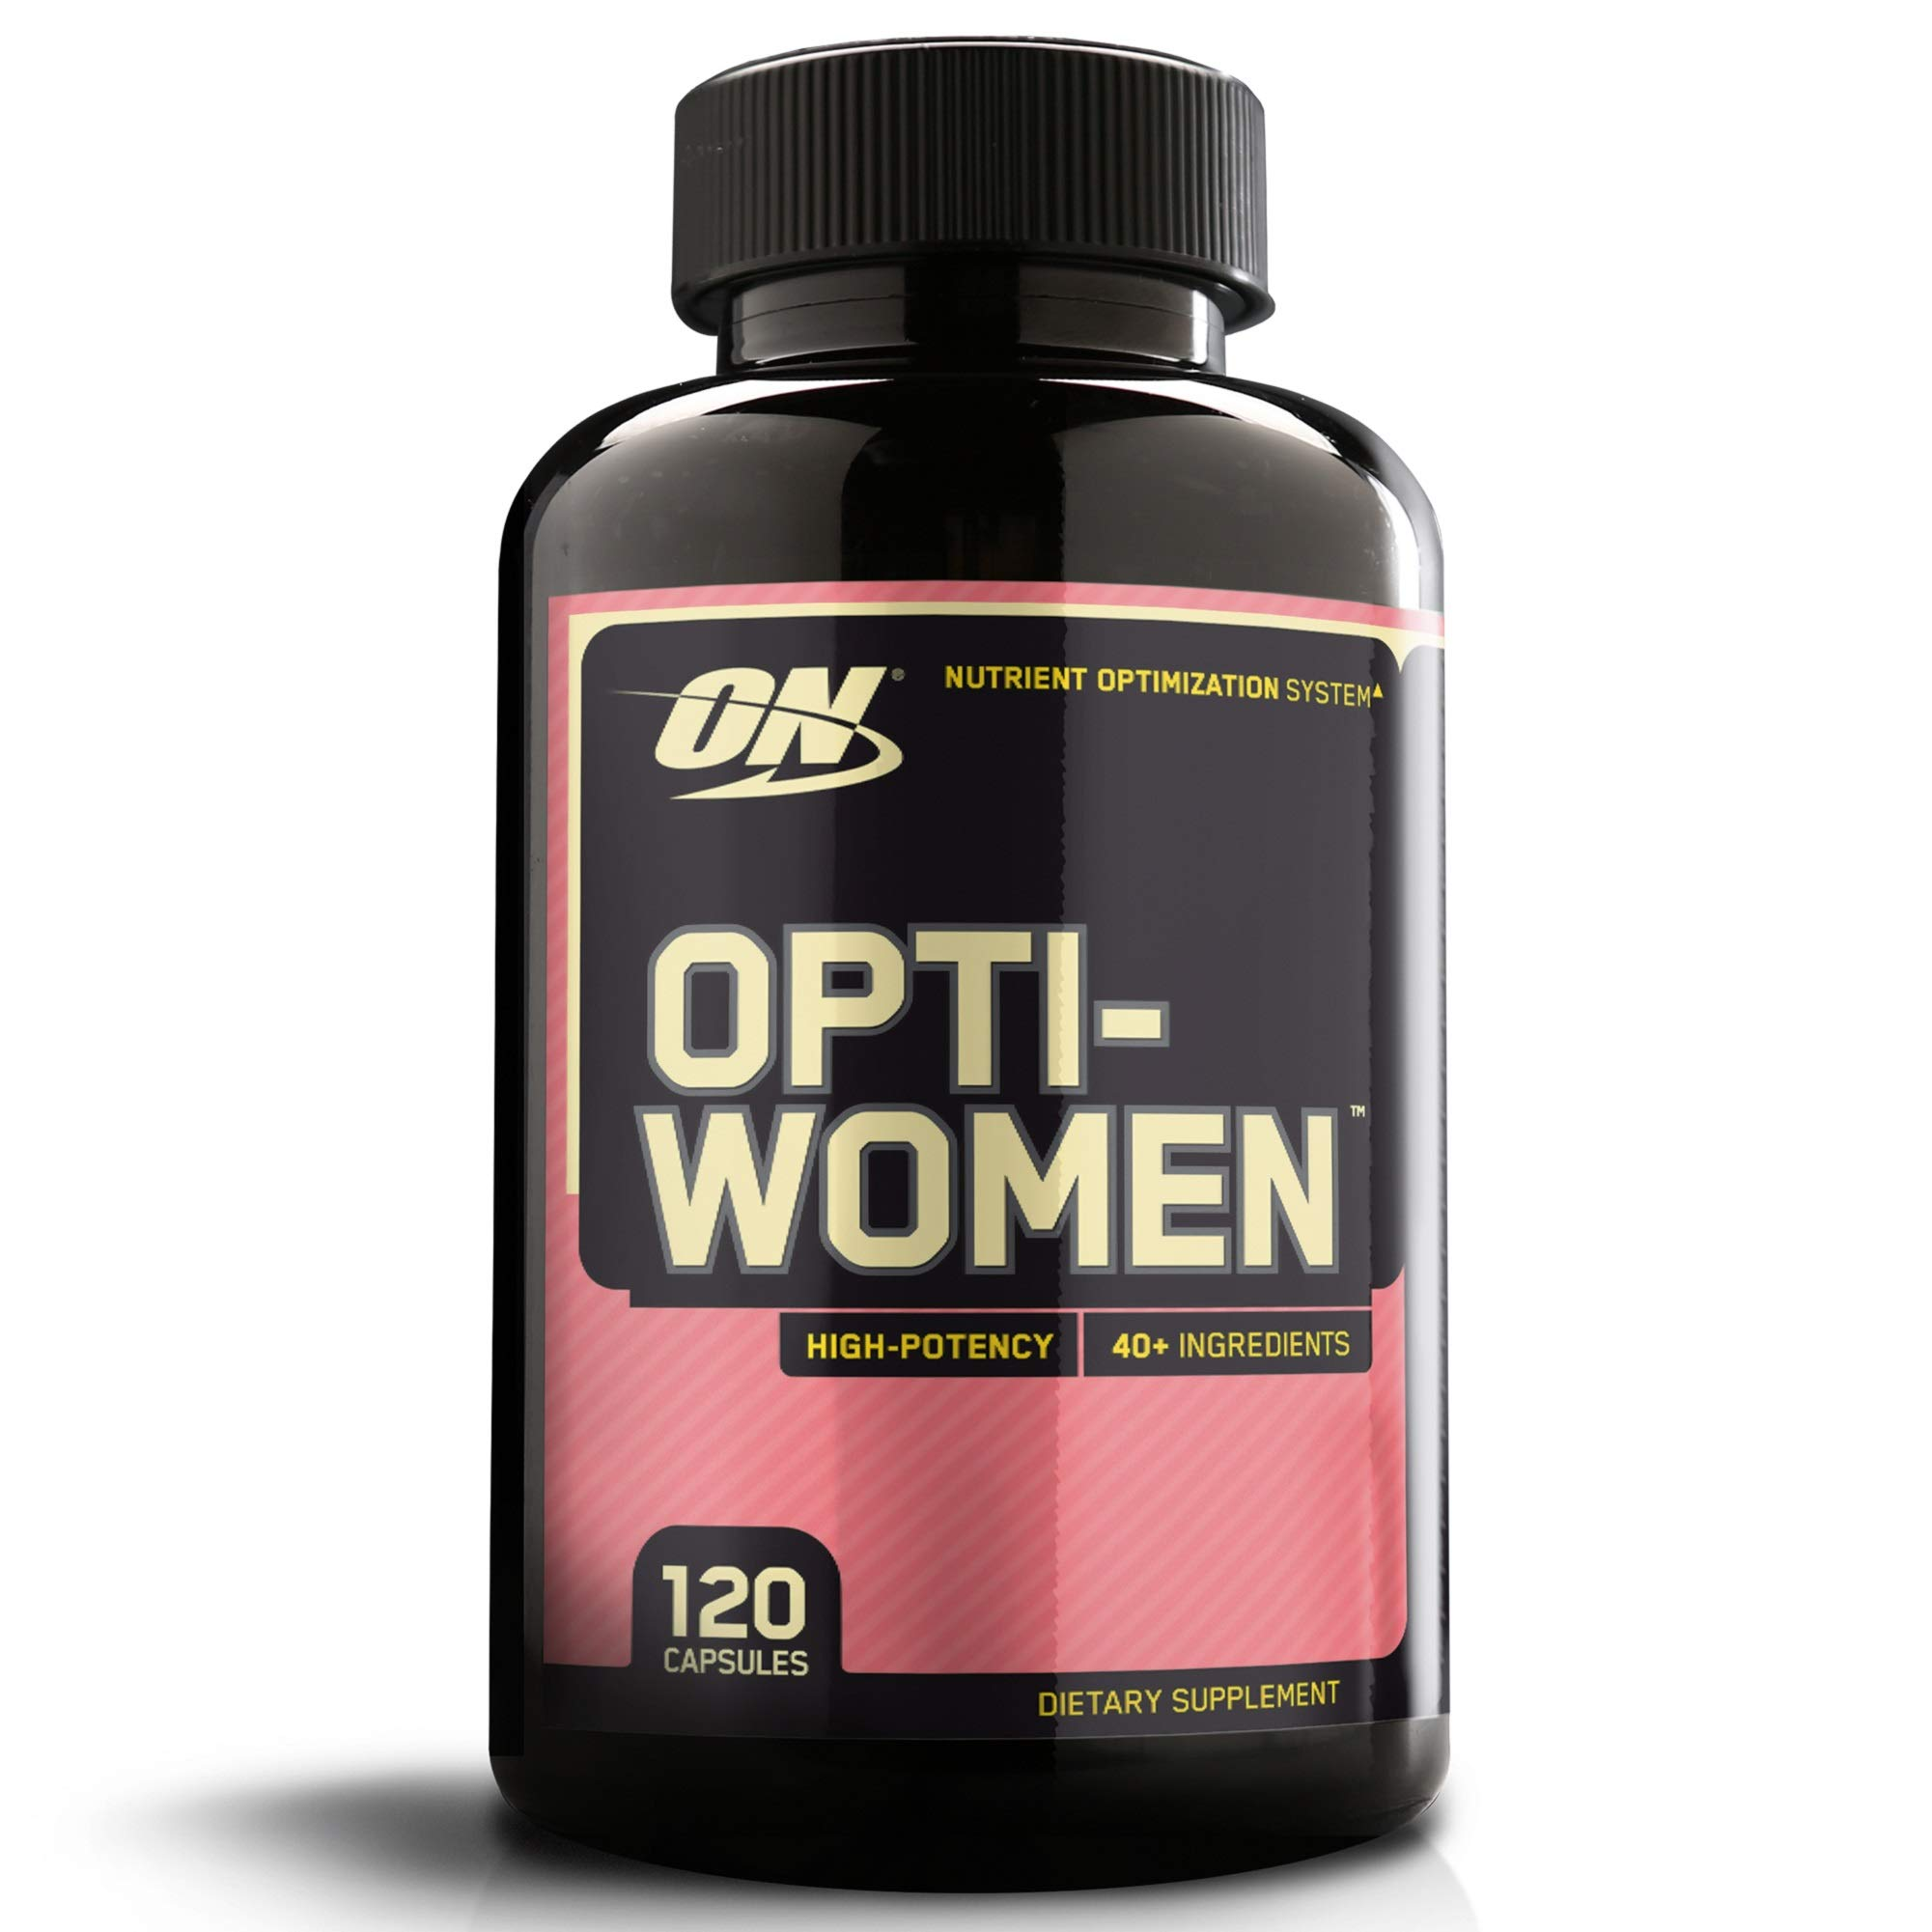 OPTIMUM NUTRITION Opti-Women, Womens Daily Multivitamin Supplement with Iron, Capsules, 120 Count by Optimum Nutrition